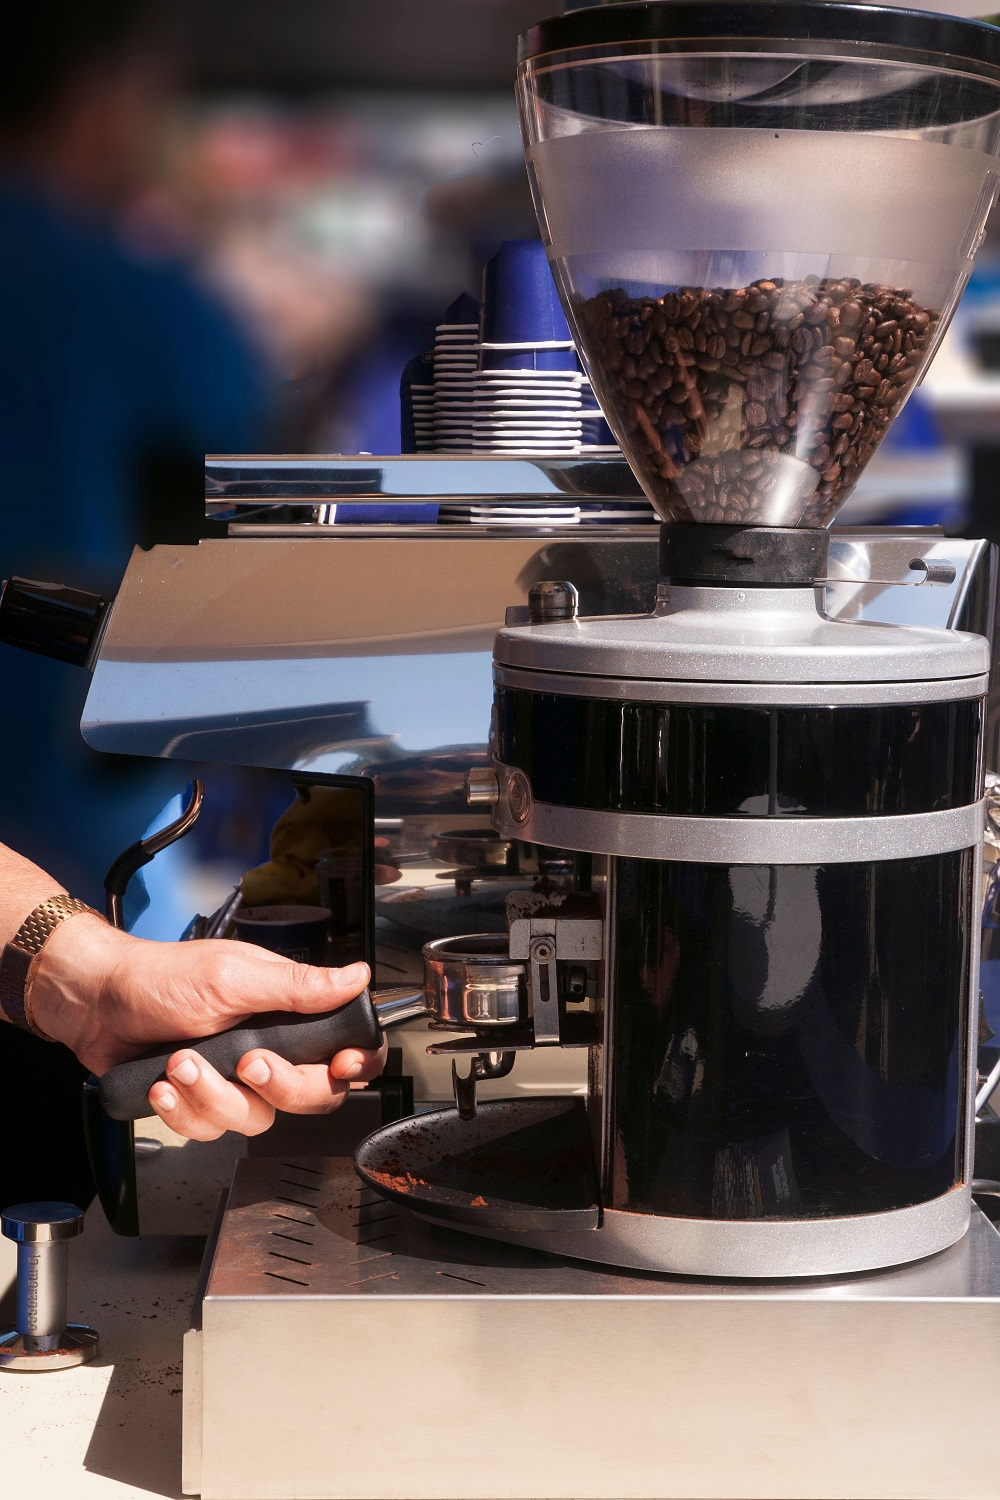 grind-and-brew-coffee-maker2